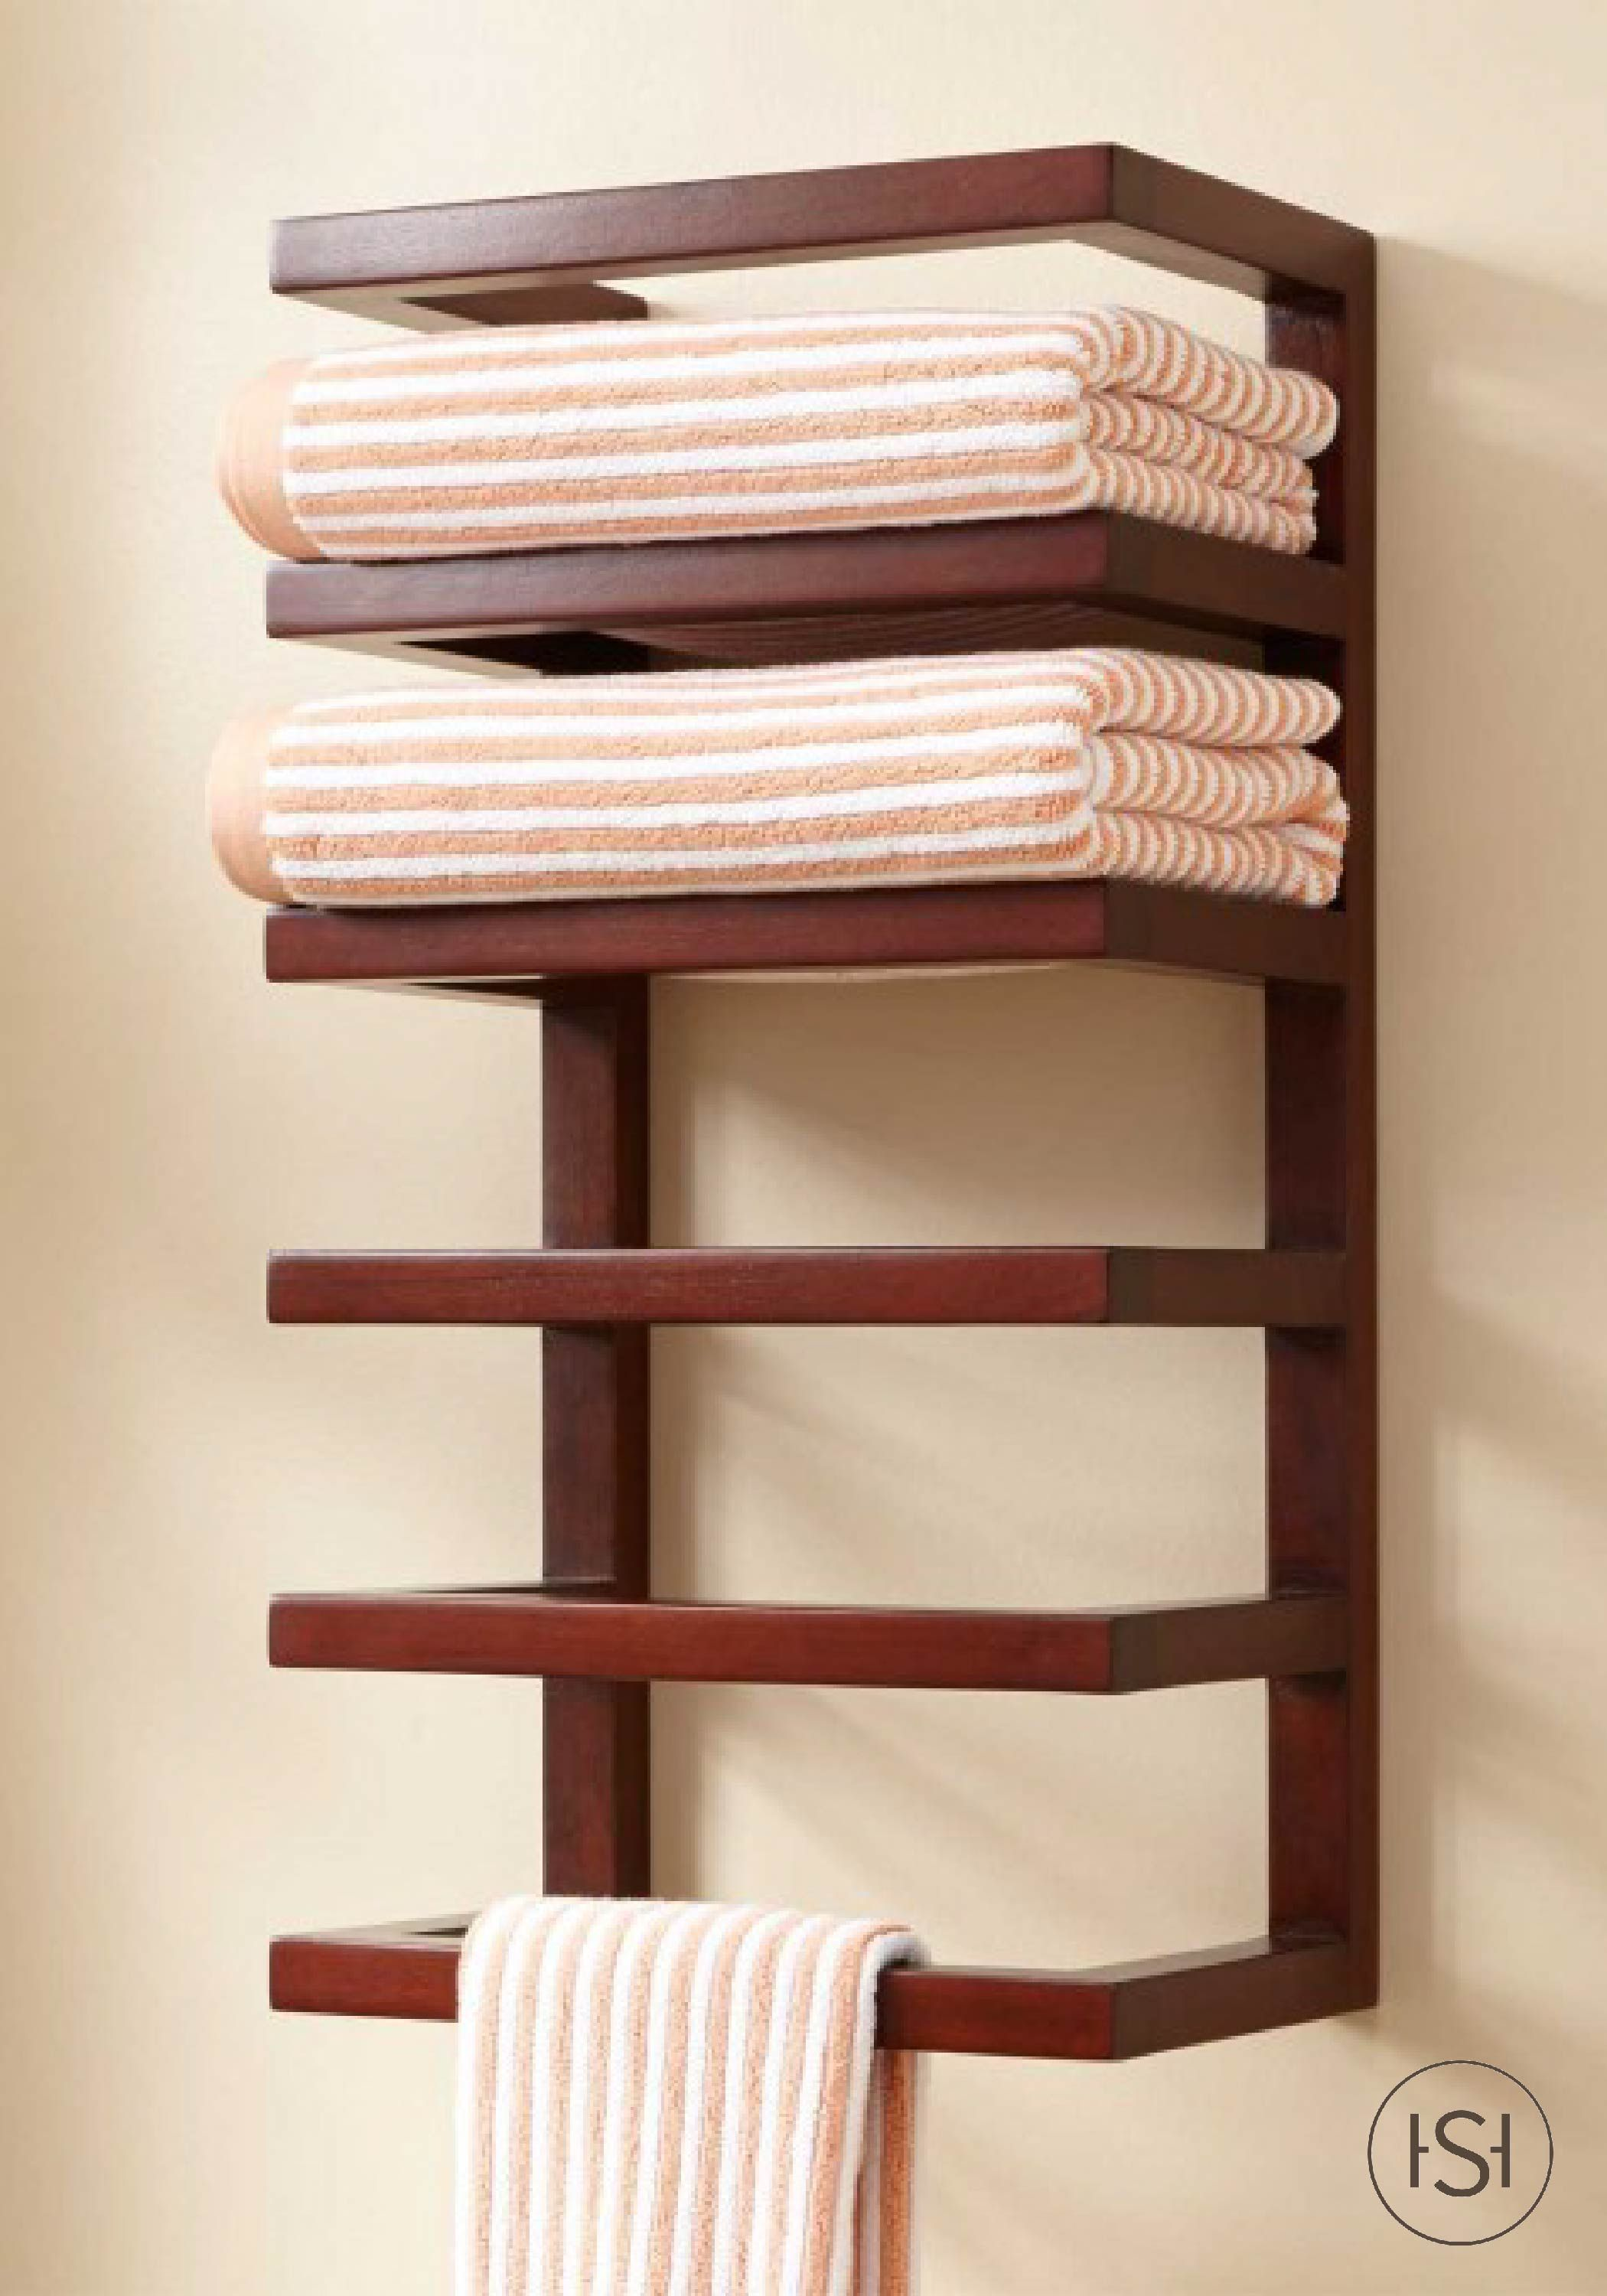 vintage racks feat hooks full shelves stairs mesmerizing wall hardware bathroom with for wooden of decorations as rac mount white ideas endearing basket rack wheel in removable hea towel clothes floating added size